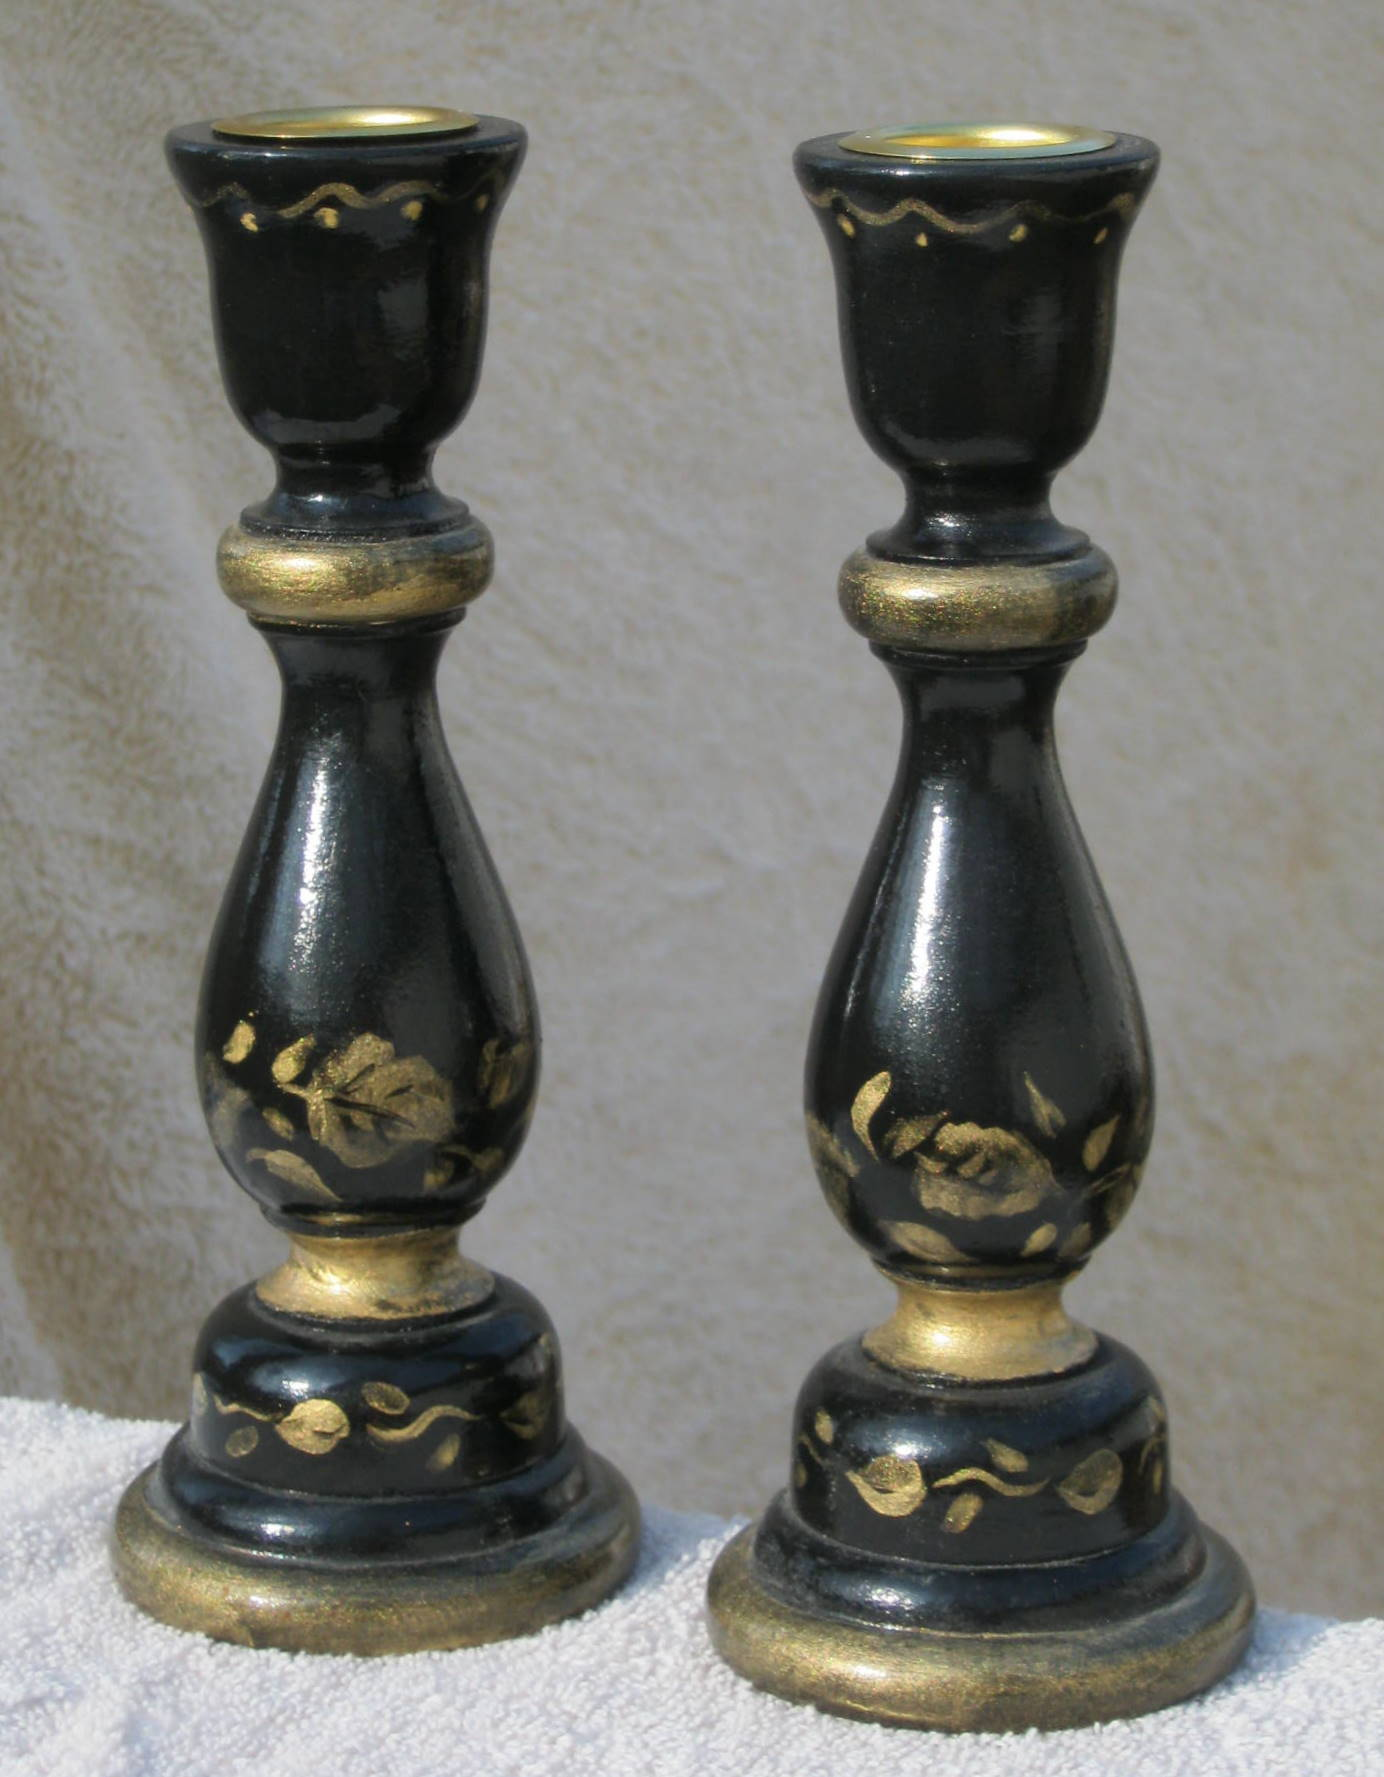 Handpainted candlesticks